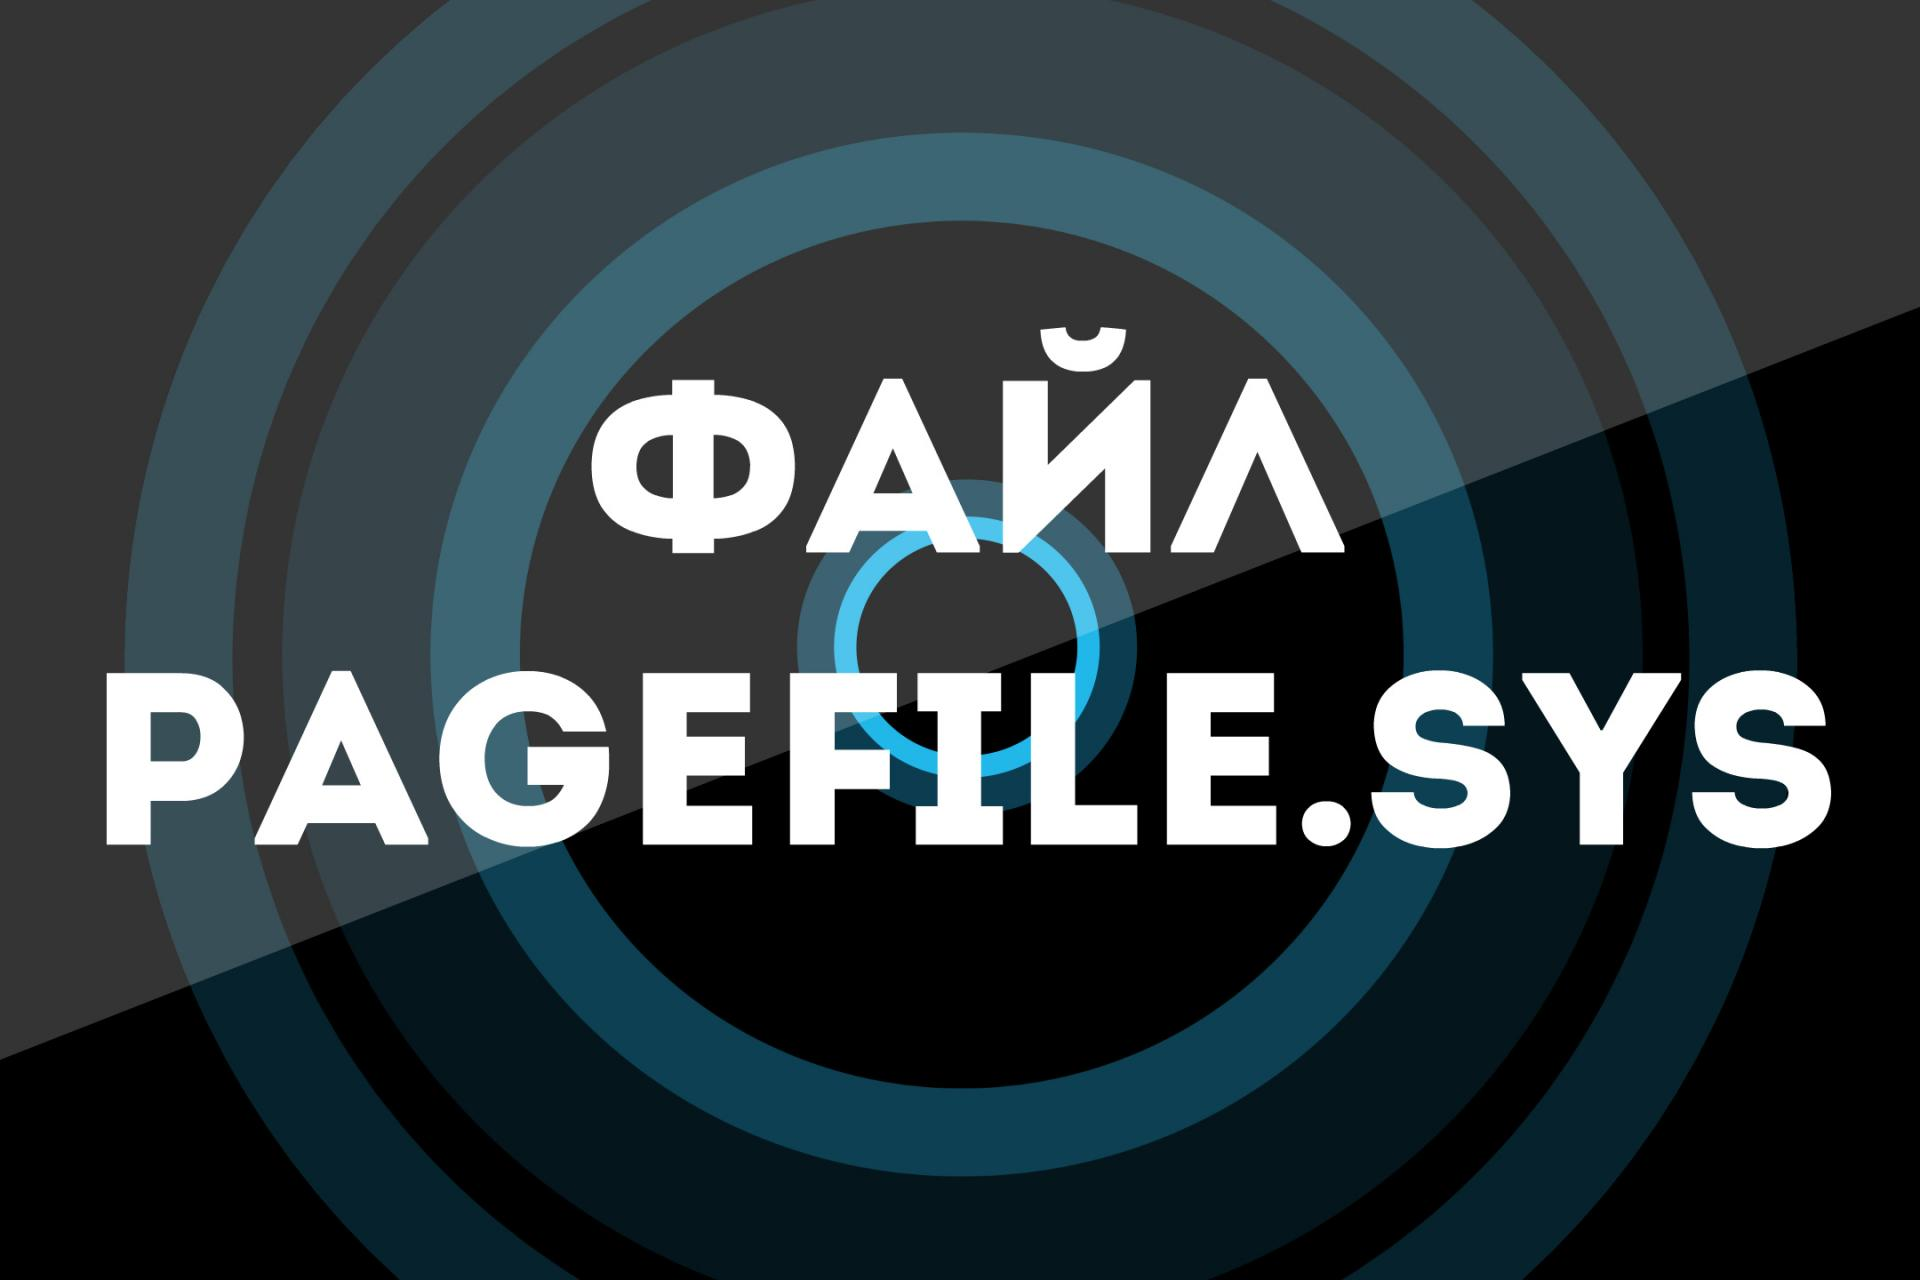 Файл pagefile sys